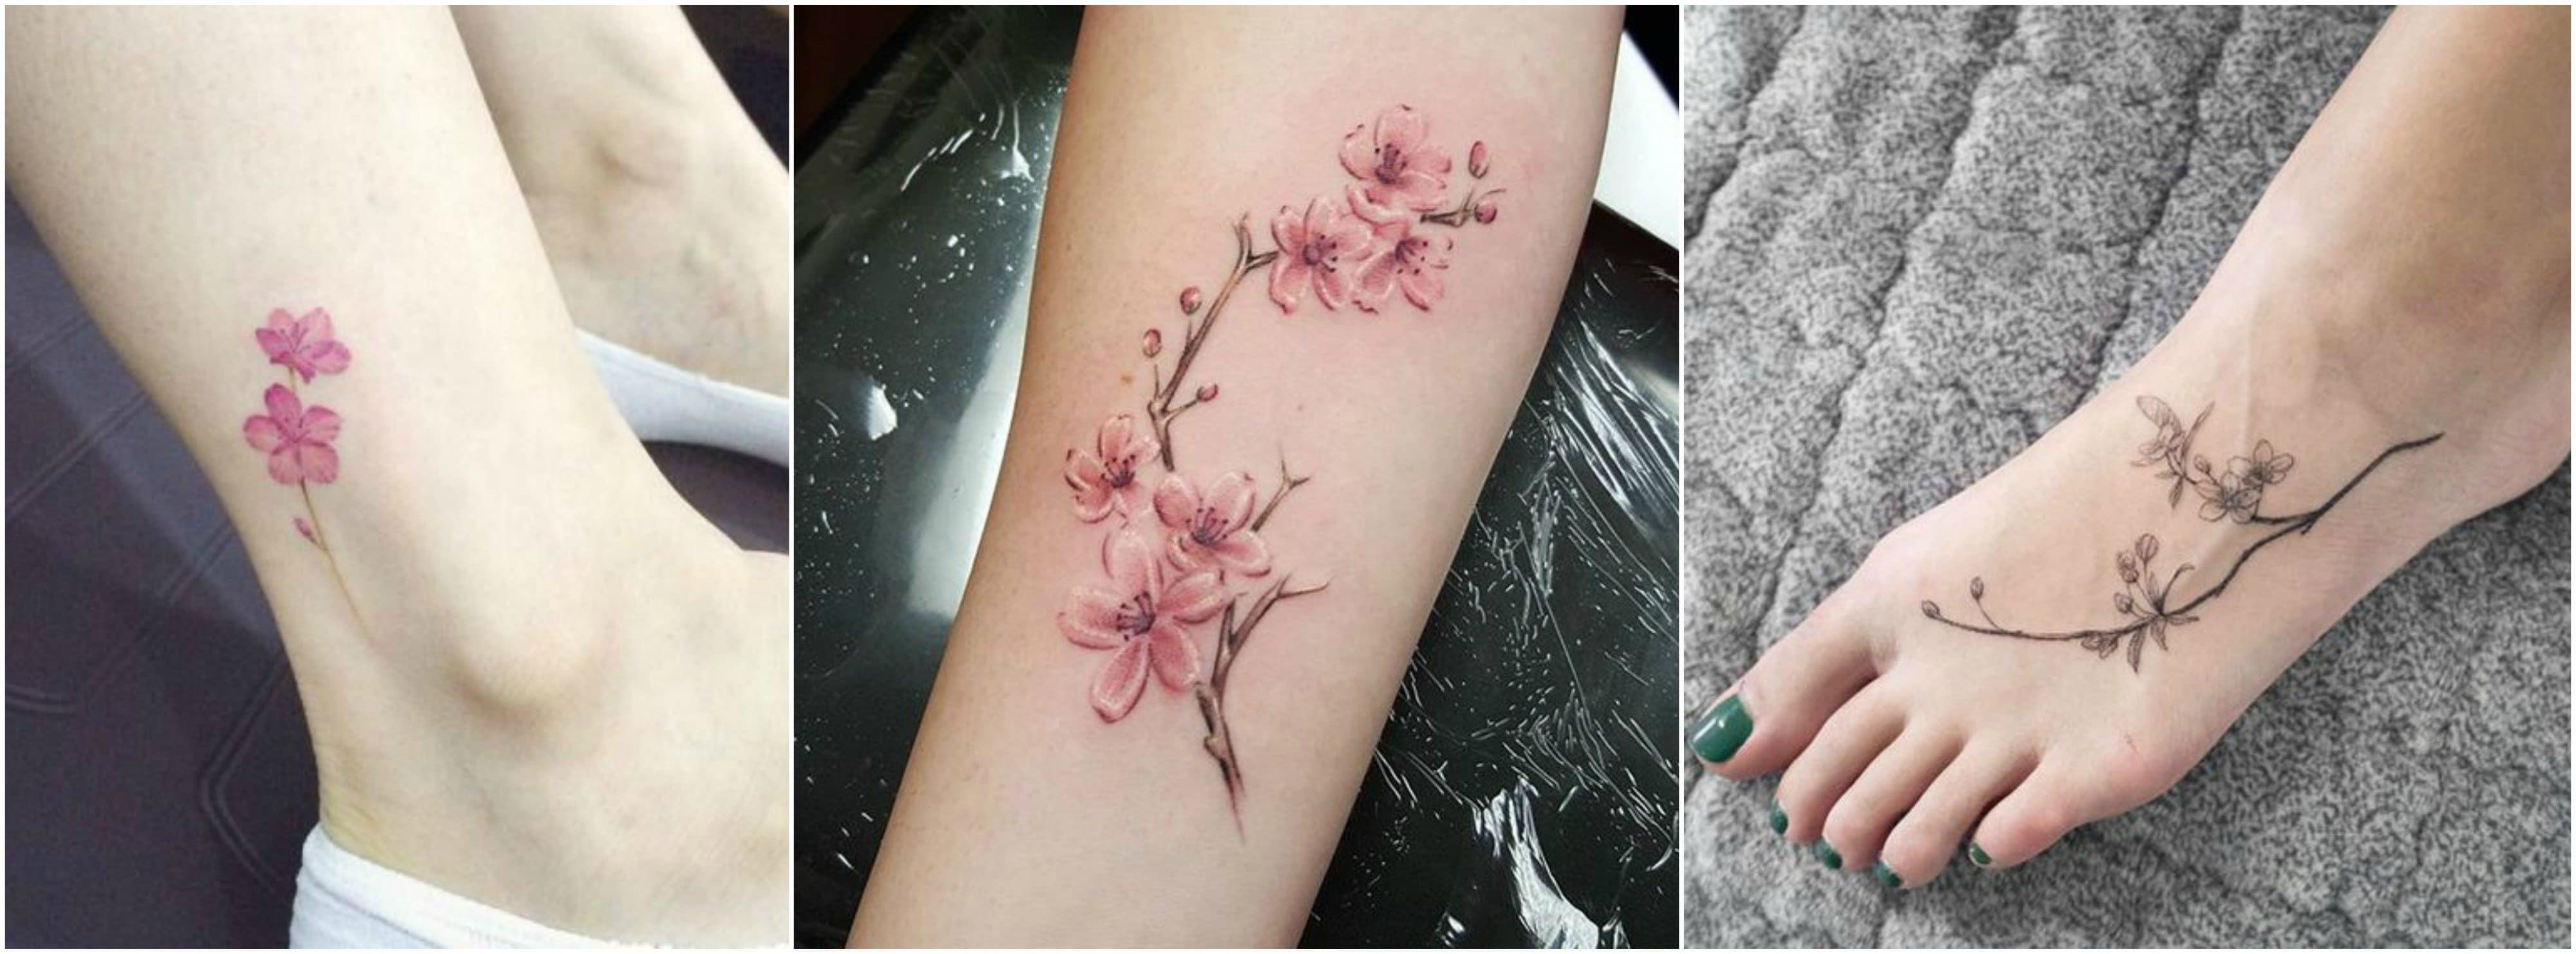 Uncover The Deep Meaning Of A Cherry Blossom Tattoo 3 Cherry Blossom Tattoo Blossom Tattoo Japanese Tattoo Cherry Blossom